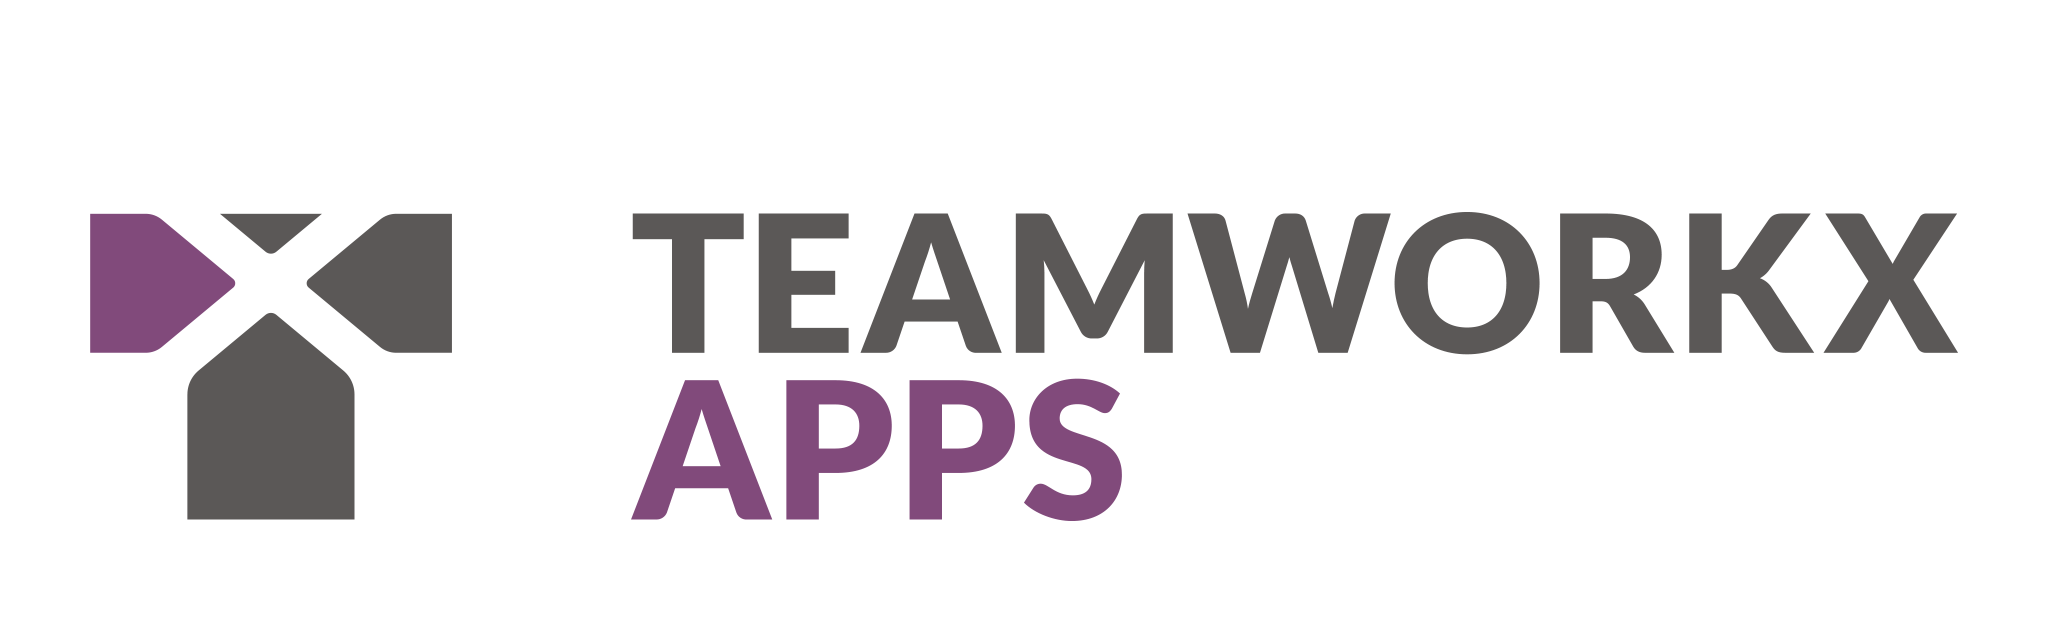 Teamworkx Apps